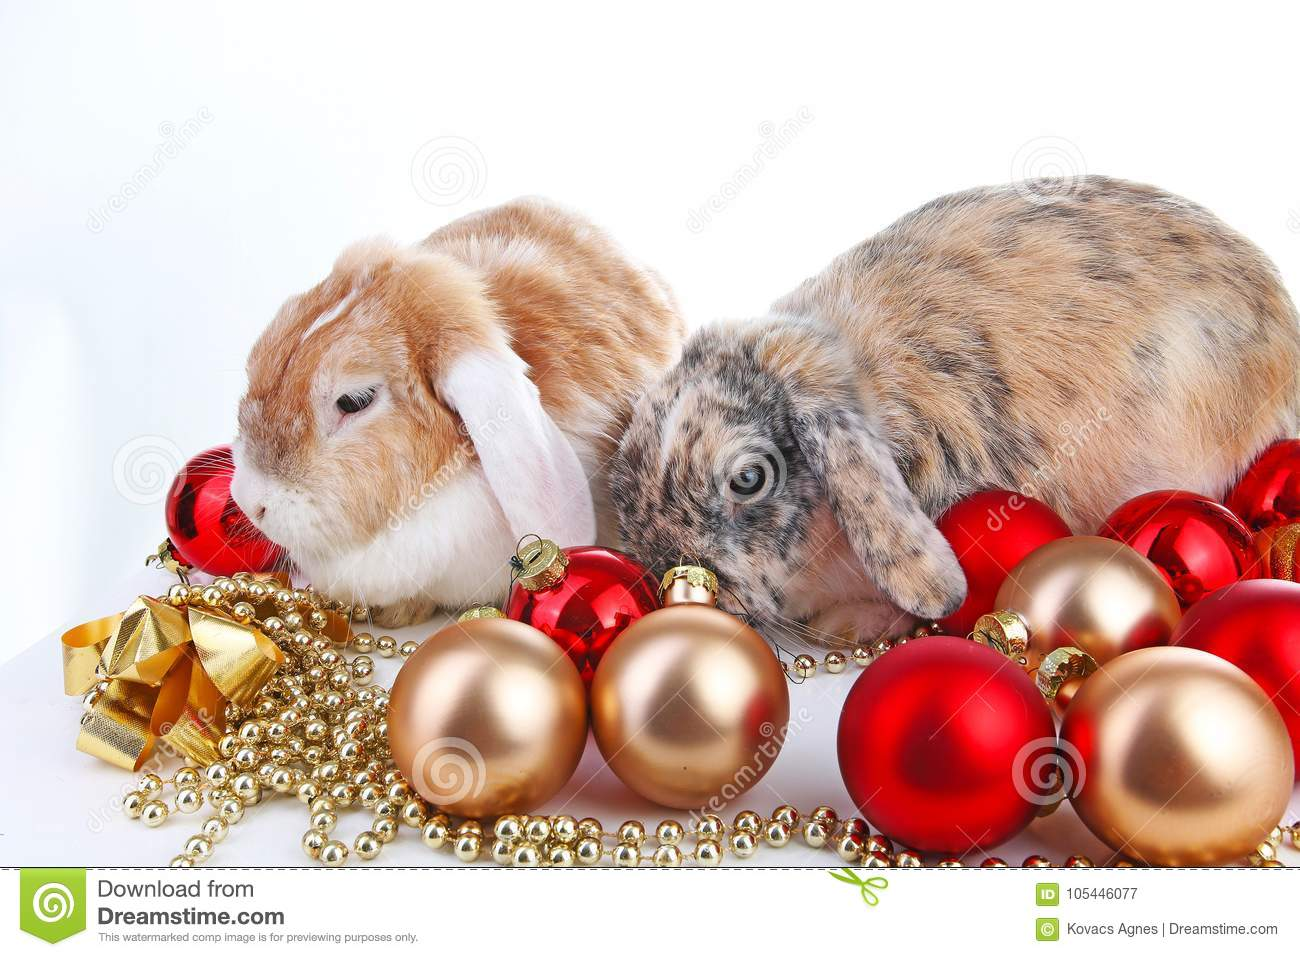 Christmas Animals Cut Lop Eared Rabbit Pet Friends On White